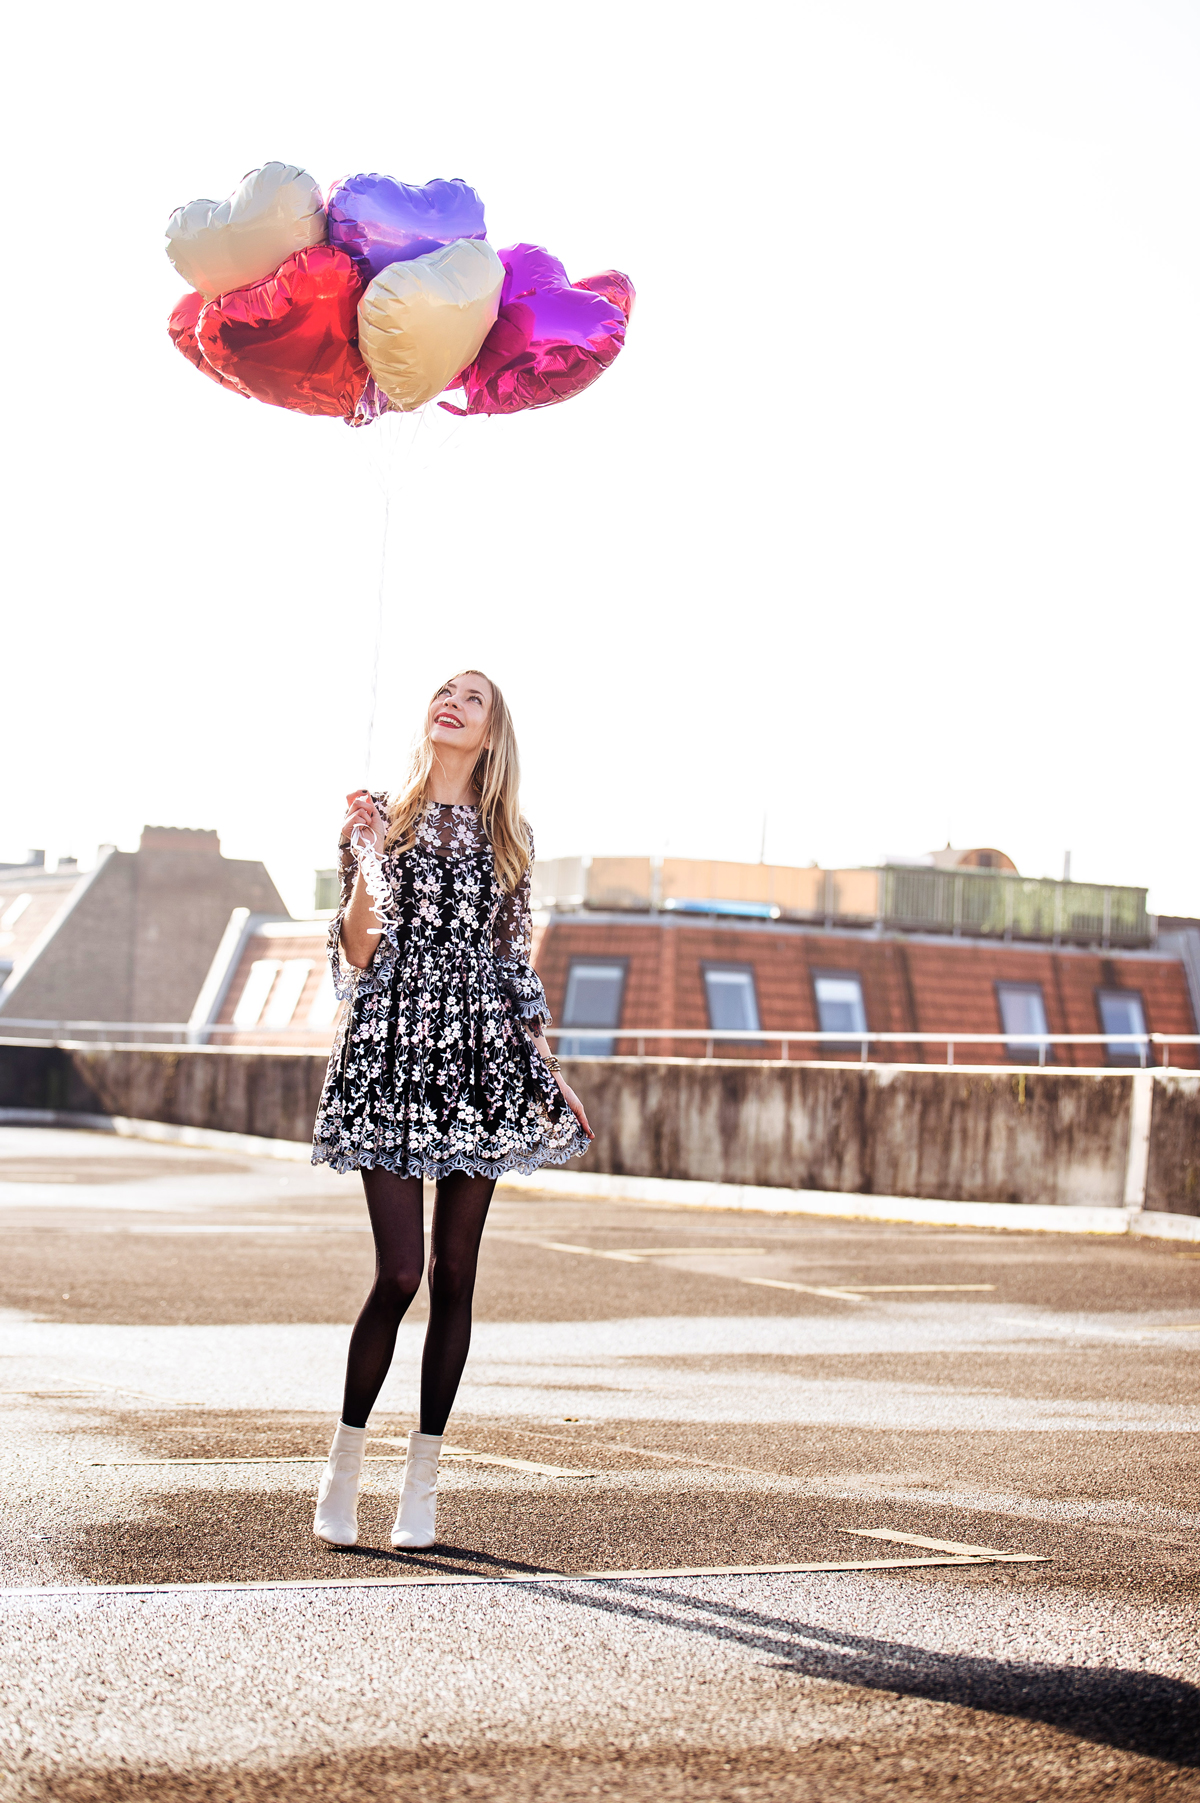 Valentine's Day Giveaway with design3000 - How I met my outfit by Dana Lohmüller